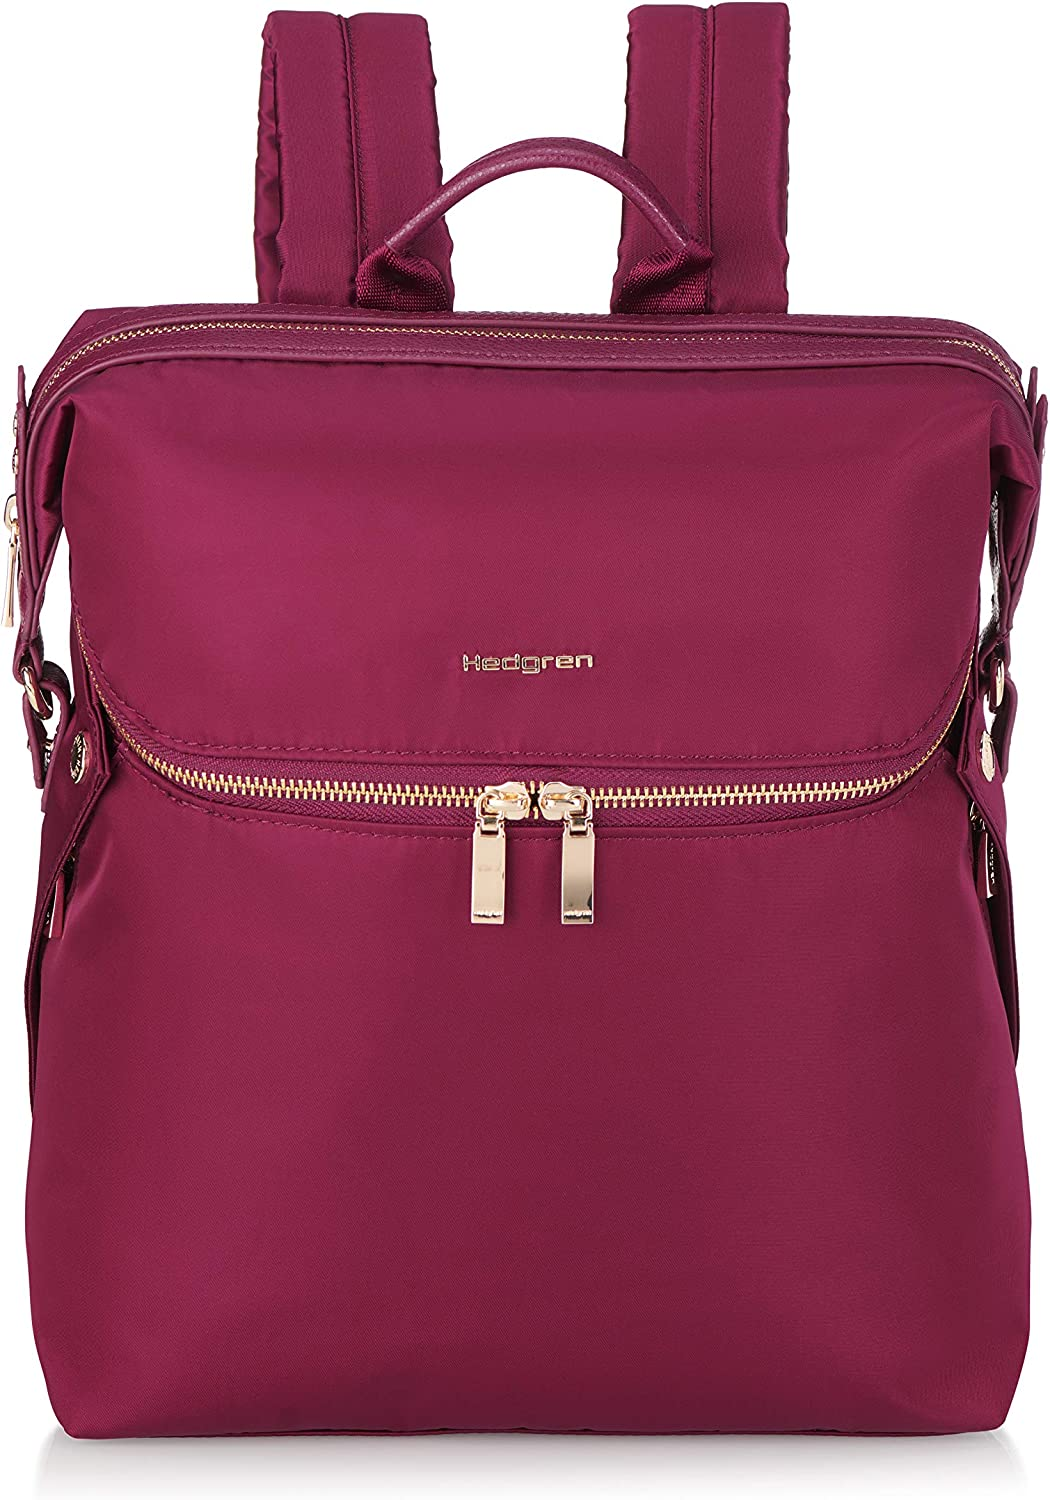 lowest price Hedgren Paragon M Fashion Max 76% OFF Medium Purse Backpack